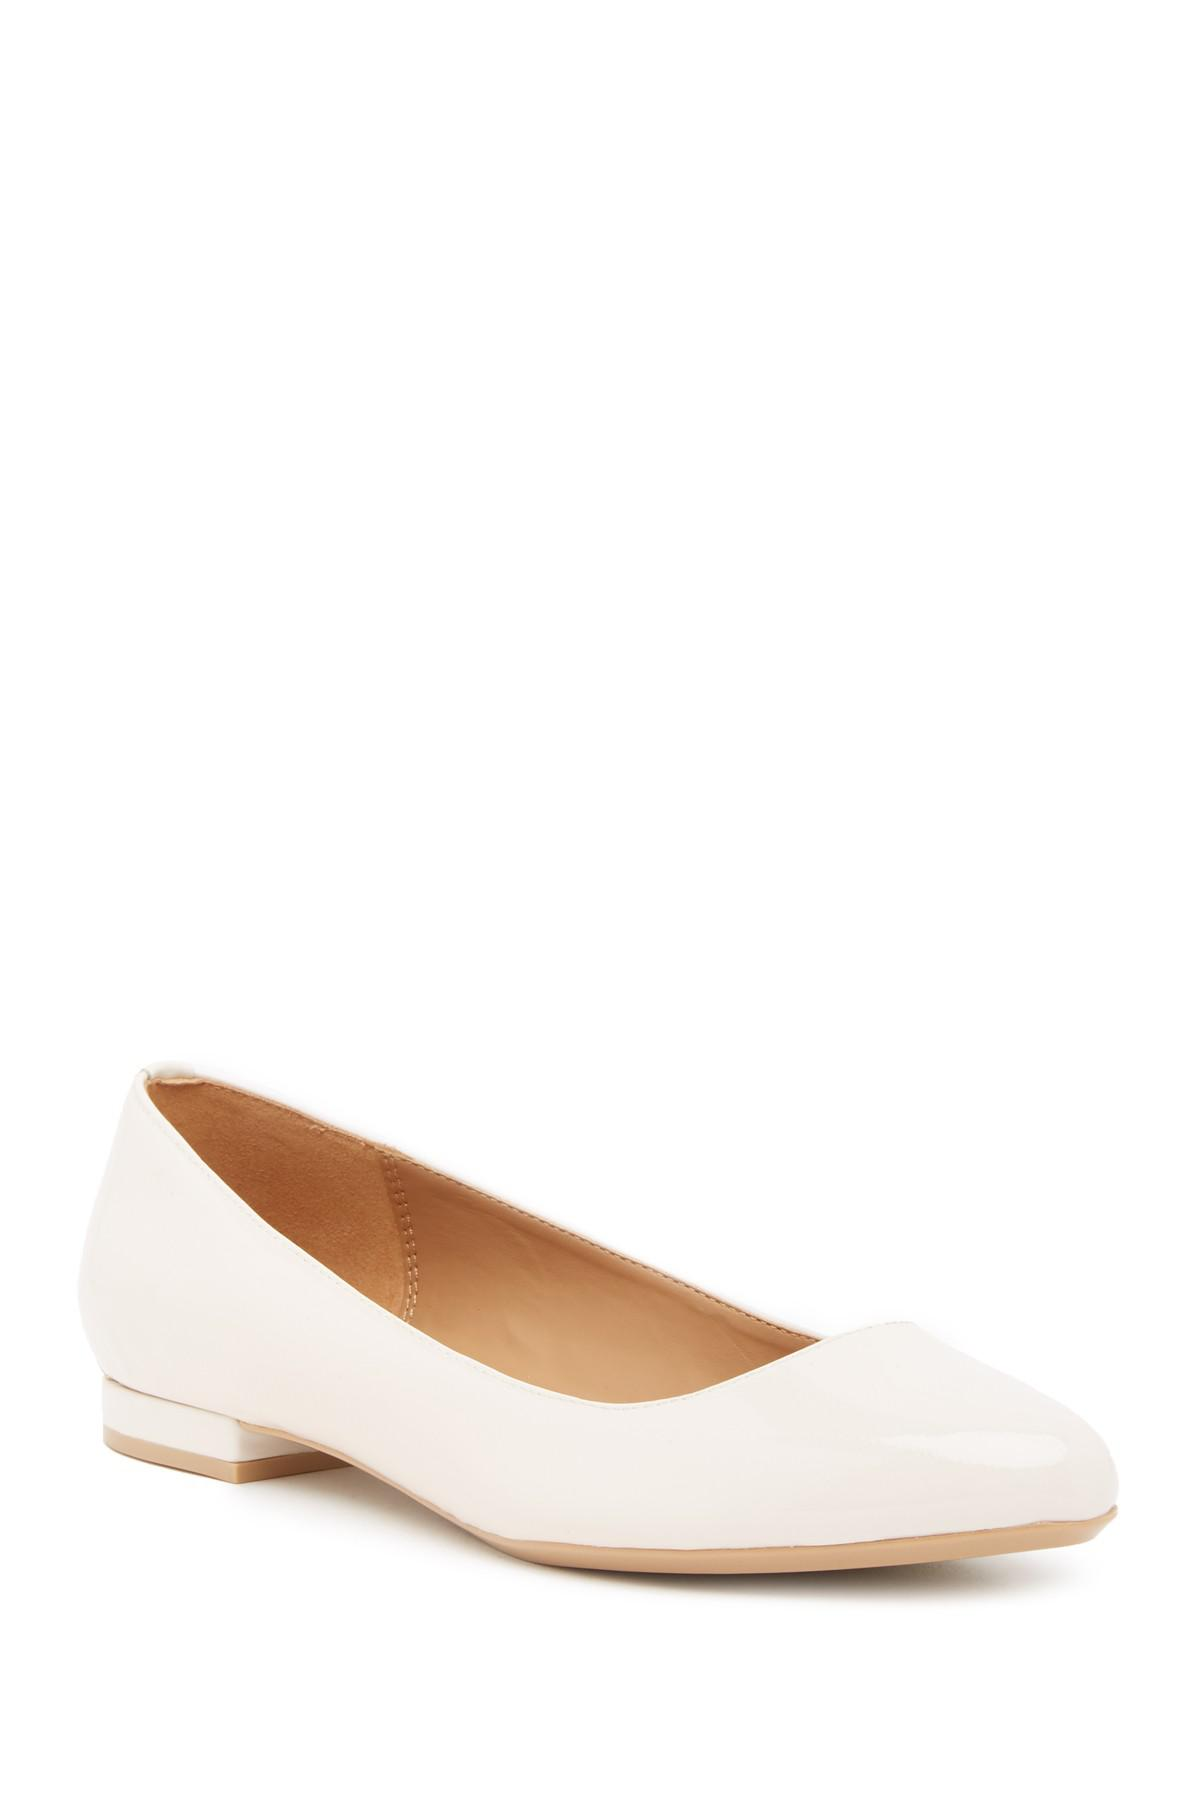 Calvin Klein Gredel Patent Flat F8skyB8